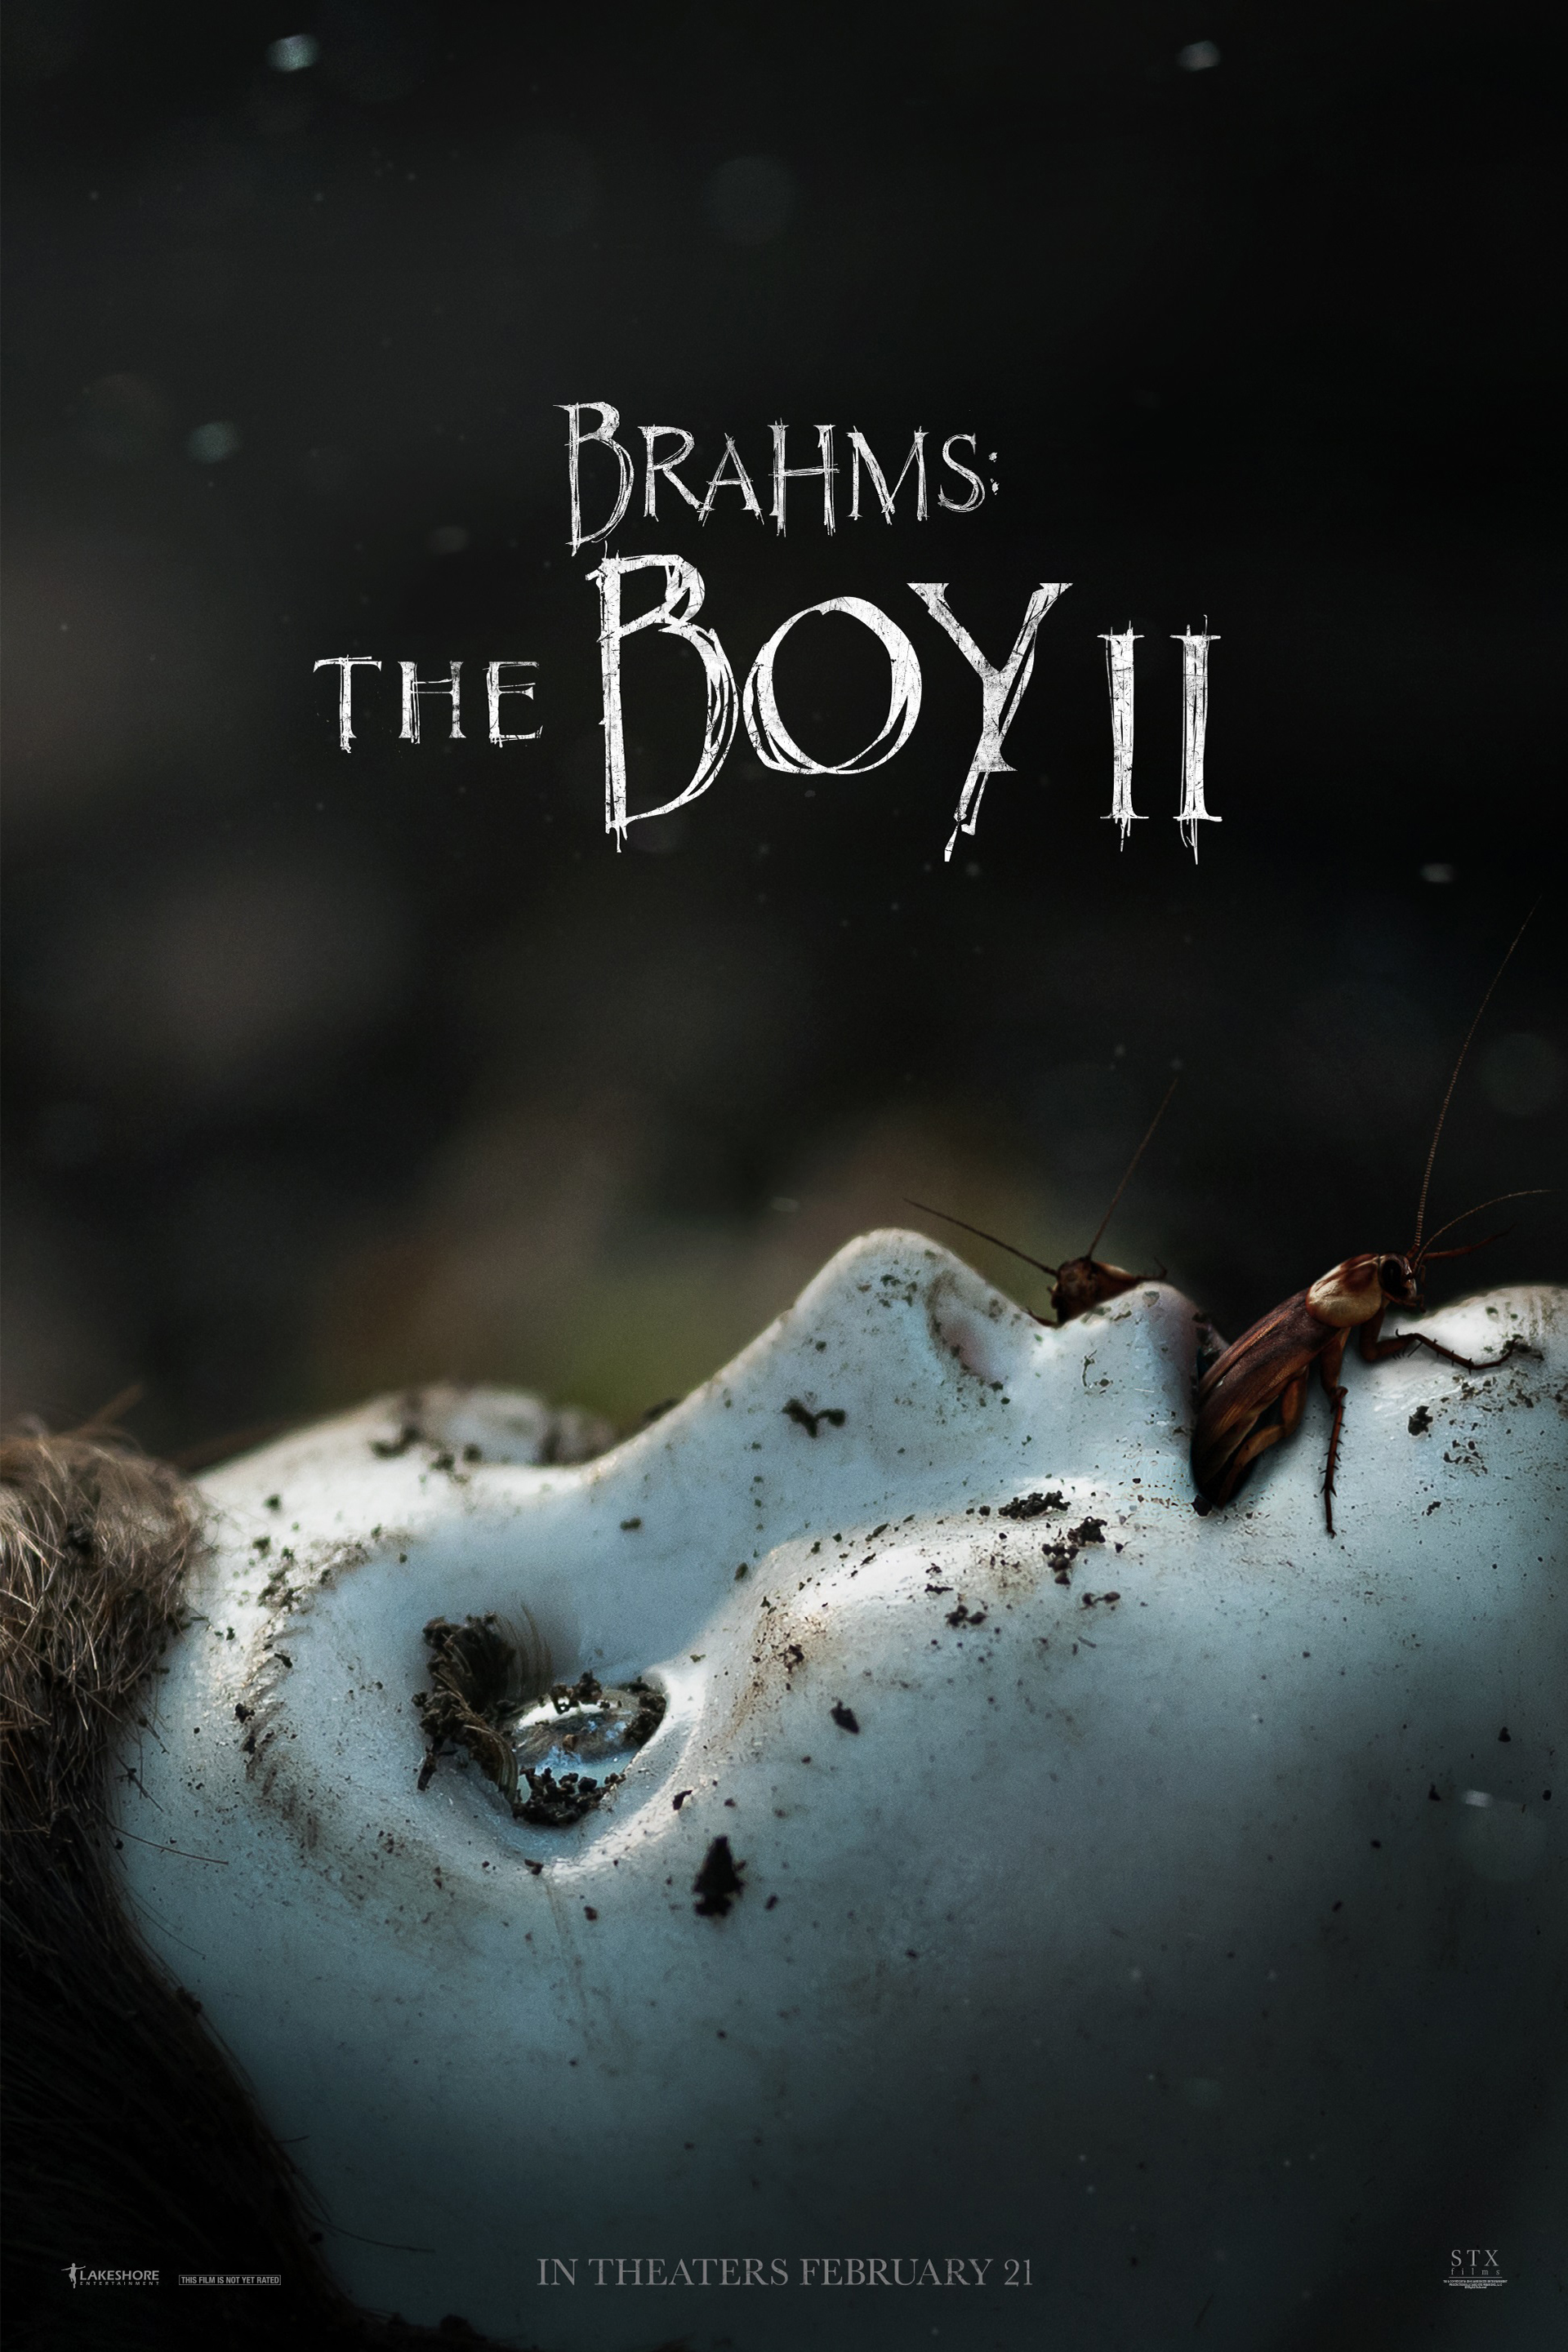 Poster for Brahms: The Boy II